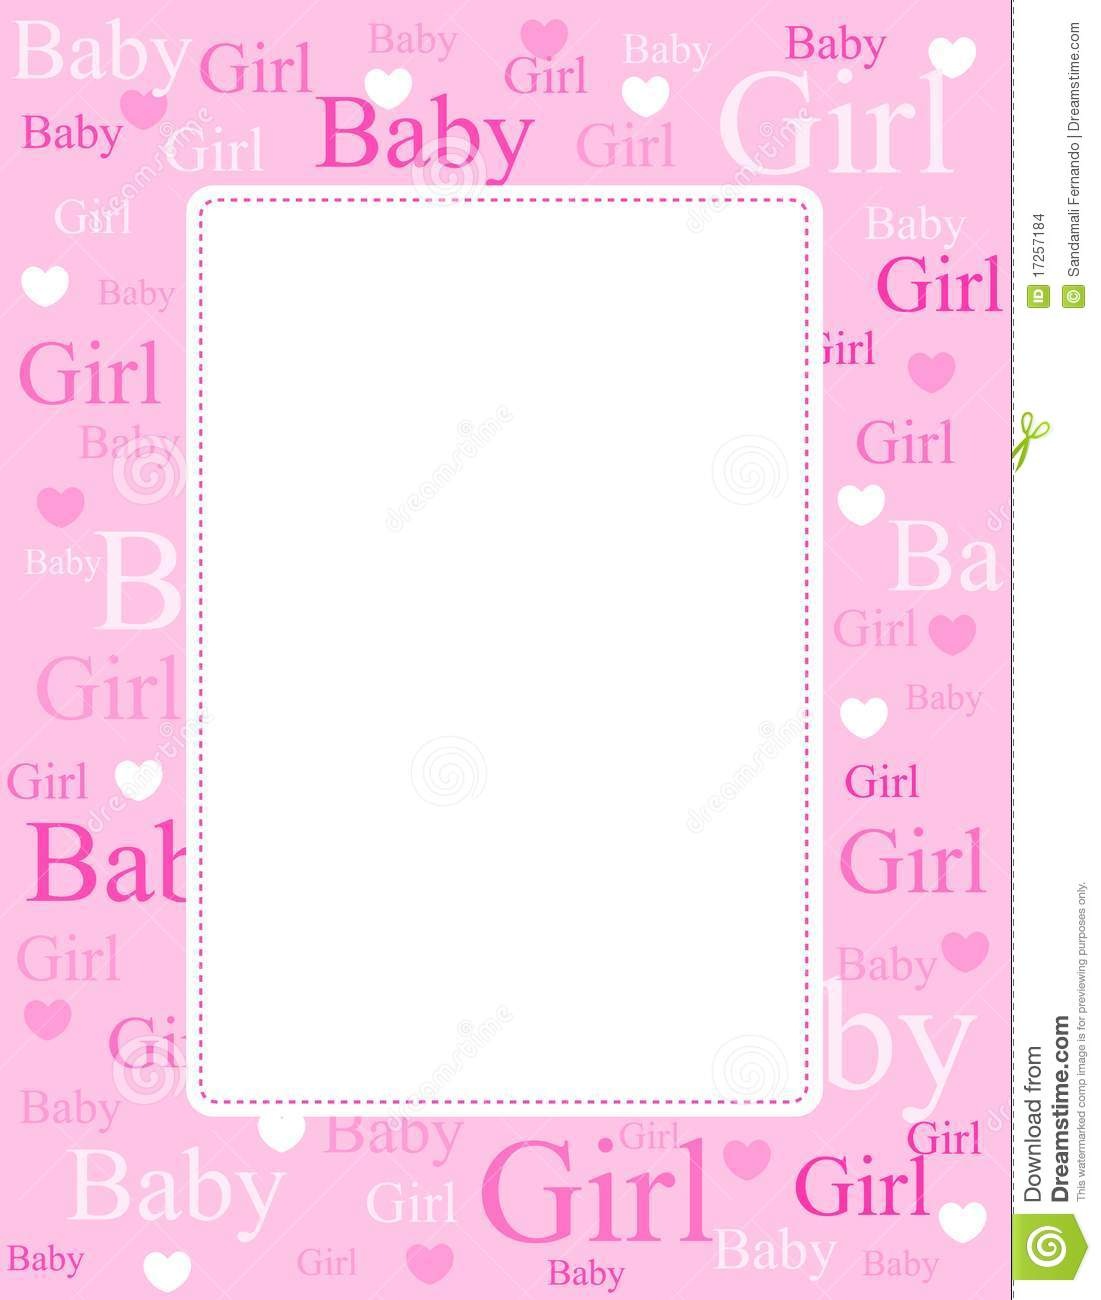 More similar stock images of ` Baby girl arrival card / background `